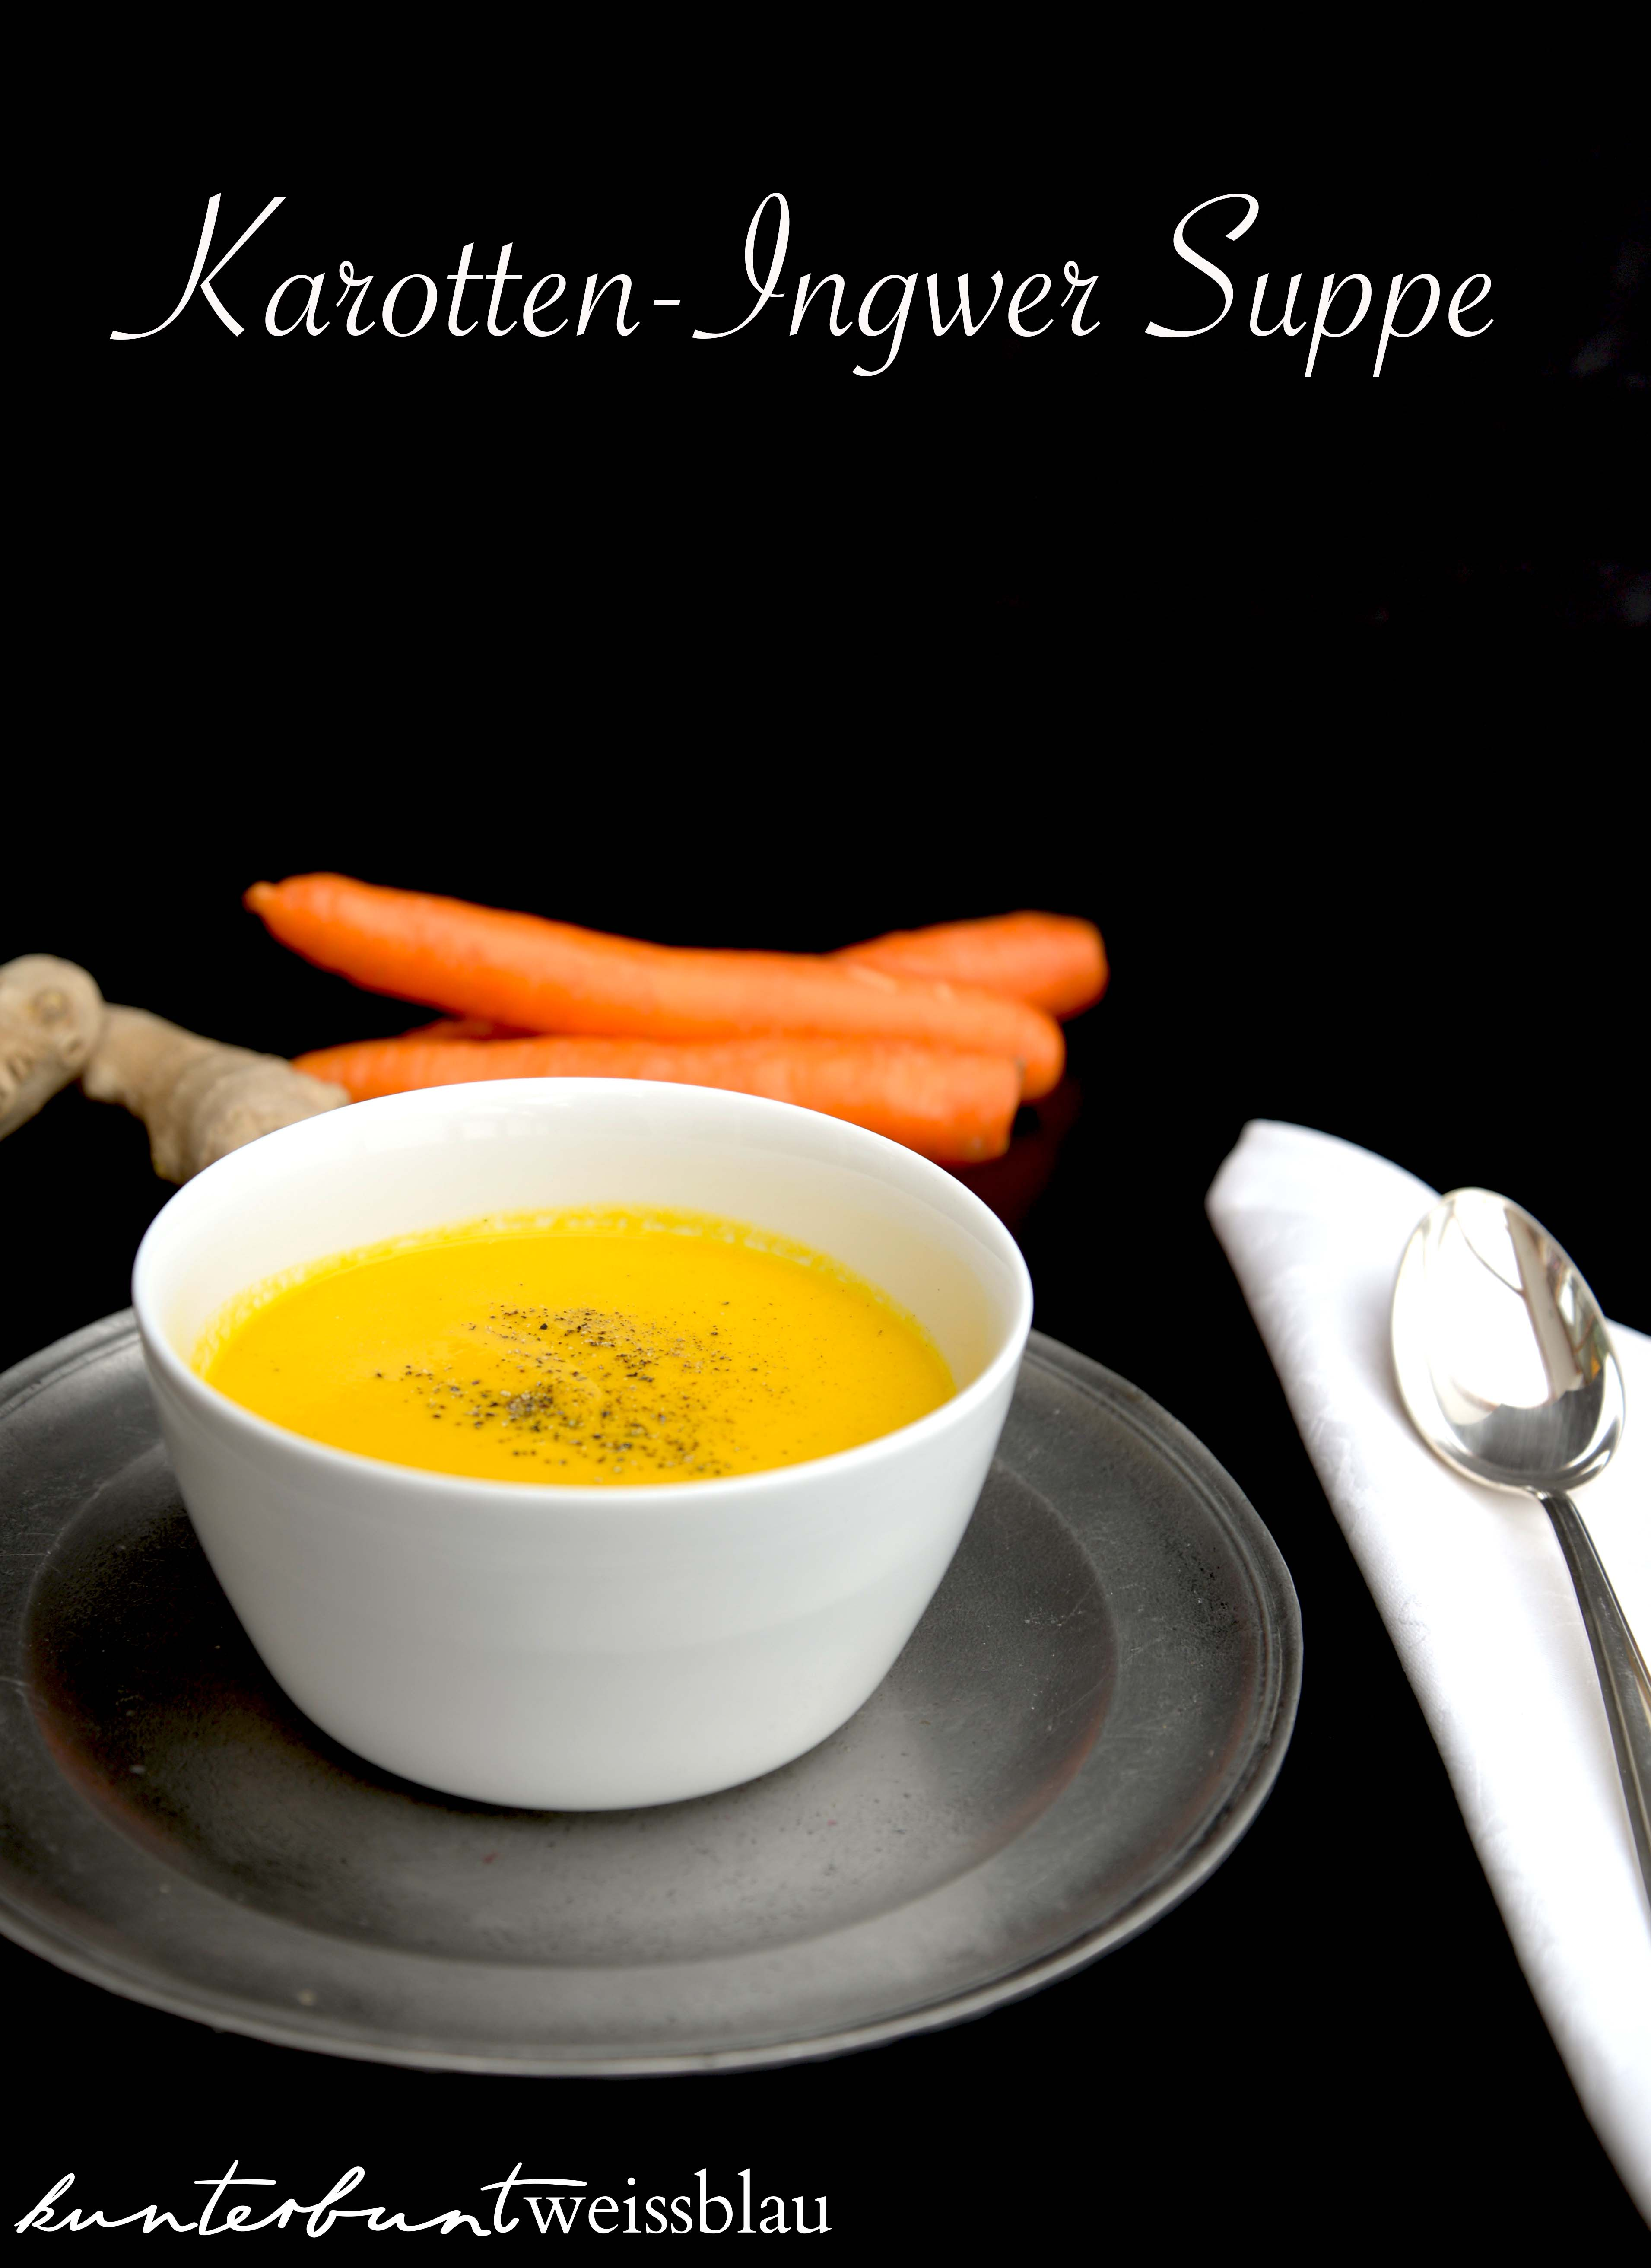 Karotten ingwer suppe thermomix